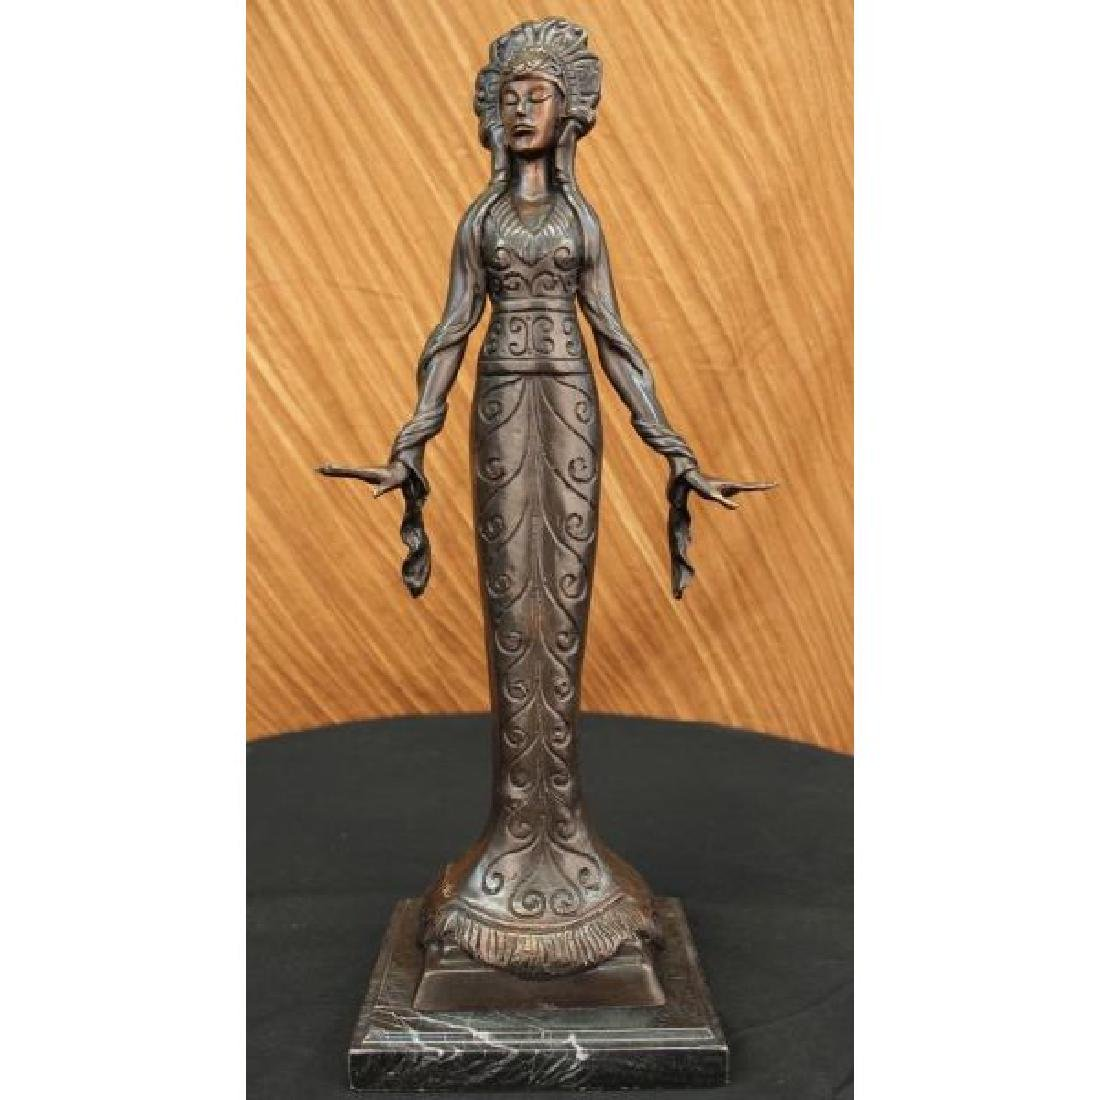 Native American Indian Girl Bronze Sculpture